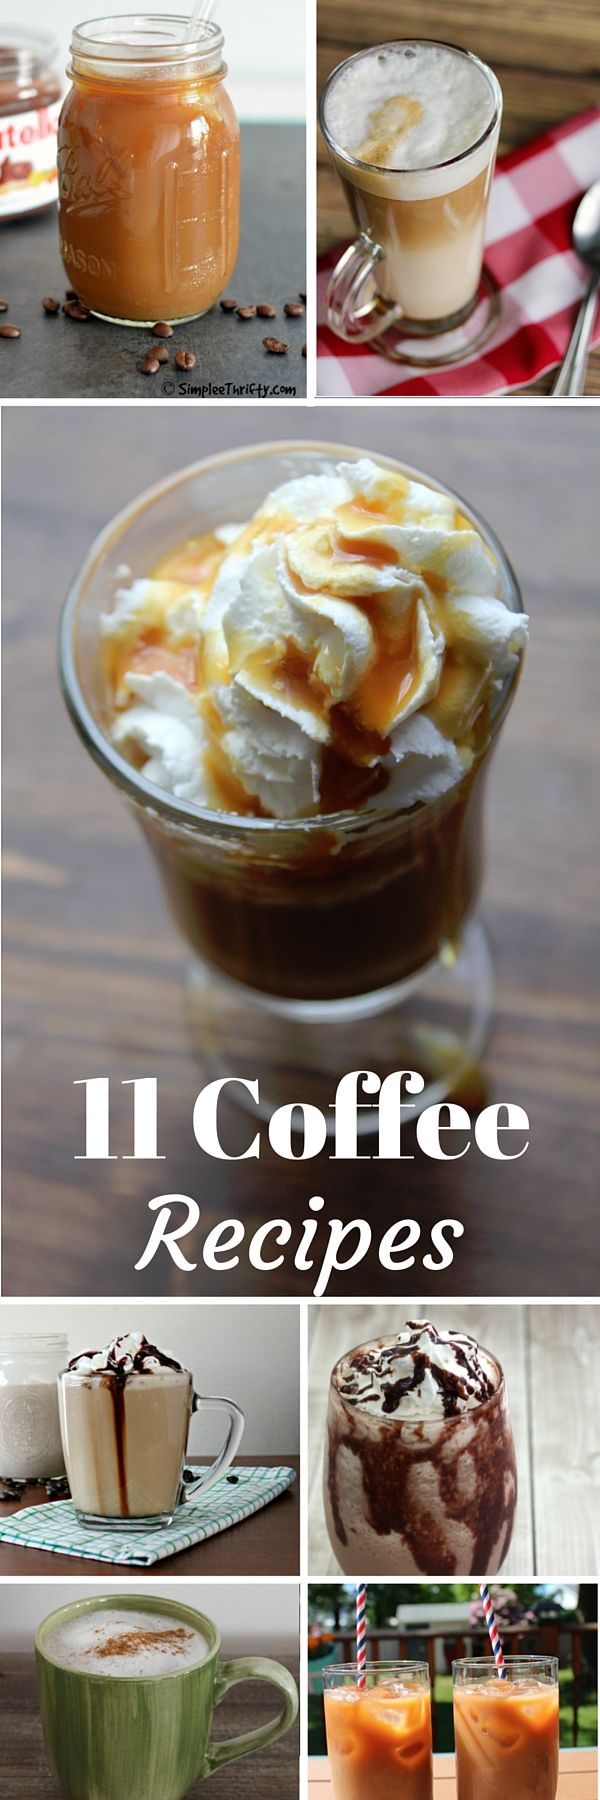 11 Homemade Coffee Recipes. International Coffee Day. Iced, hot and seasonal coffee recipes including lattes